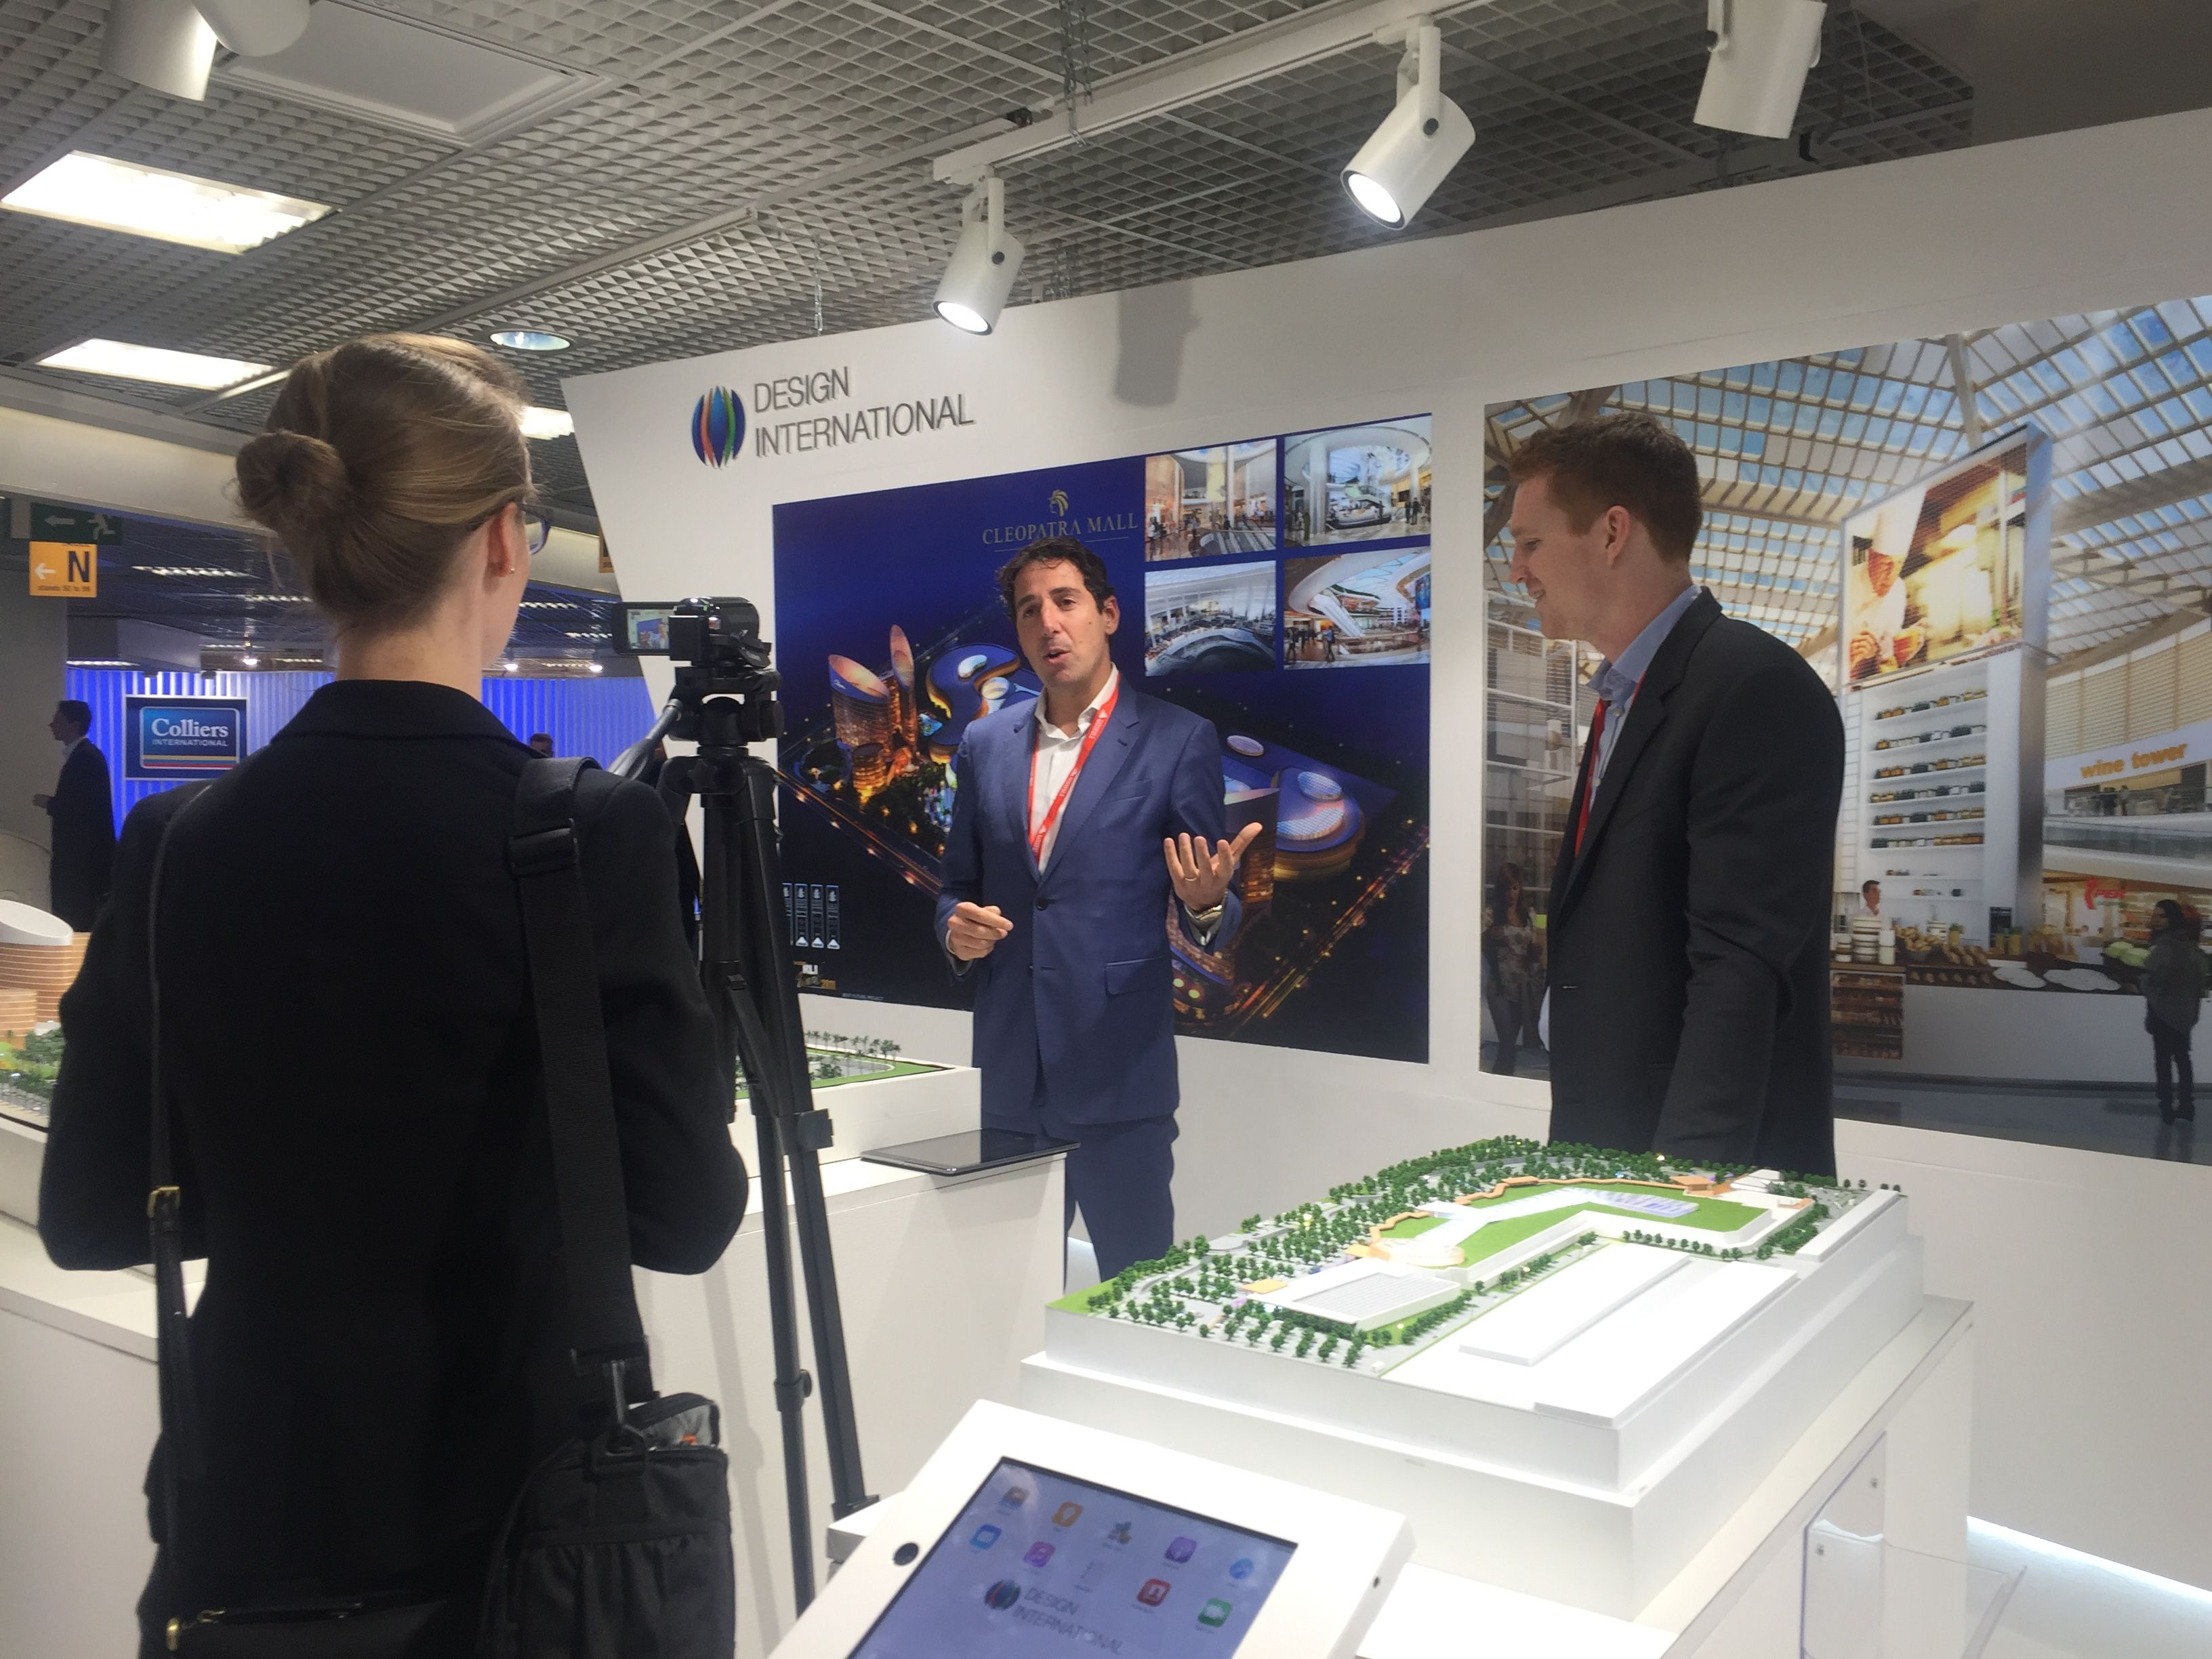 Davide Padoa, CEO, being interviewed at #MIPIM #Tradeshow #conference #realestate #exhibition #architects #architecture #design #BIM #models #architecturalmodels